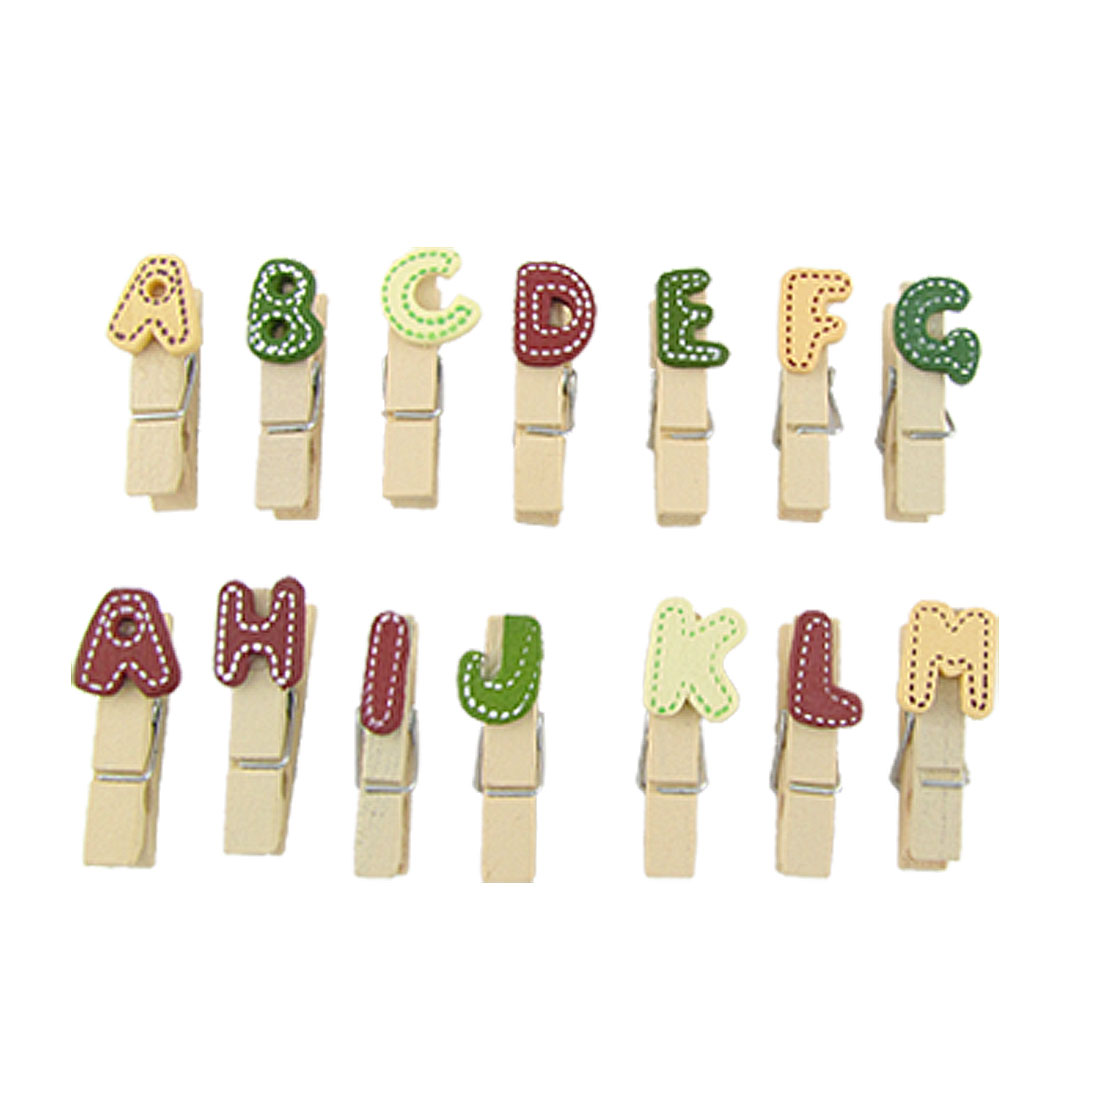 Letters Spring Wooden Clothes Pins Clips Clothespins 14 PCS